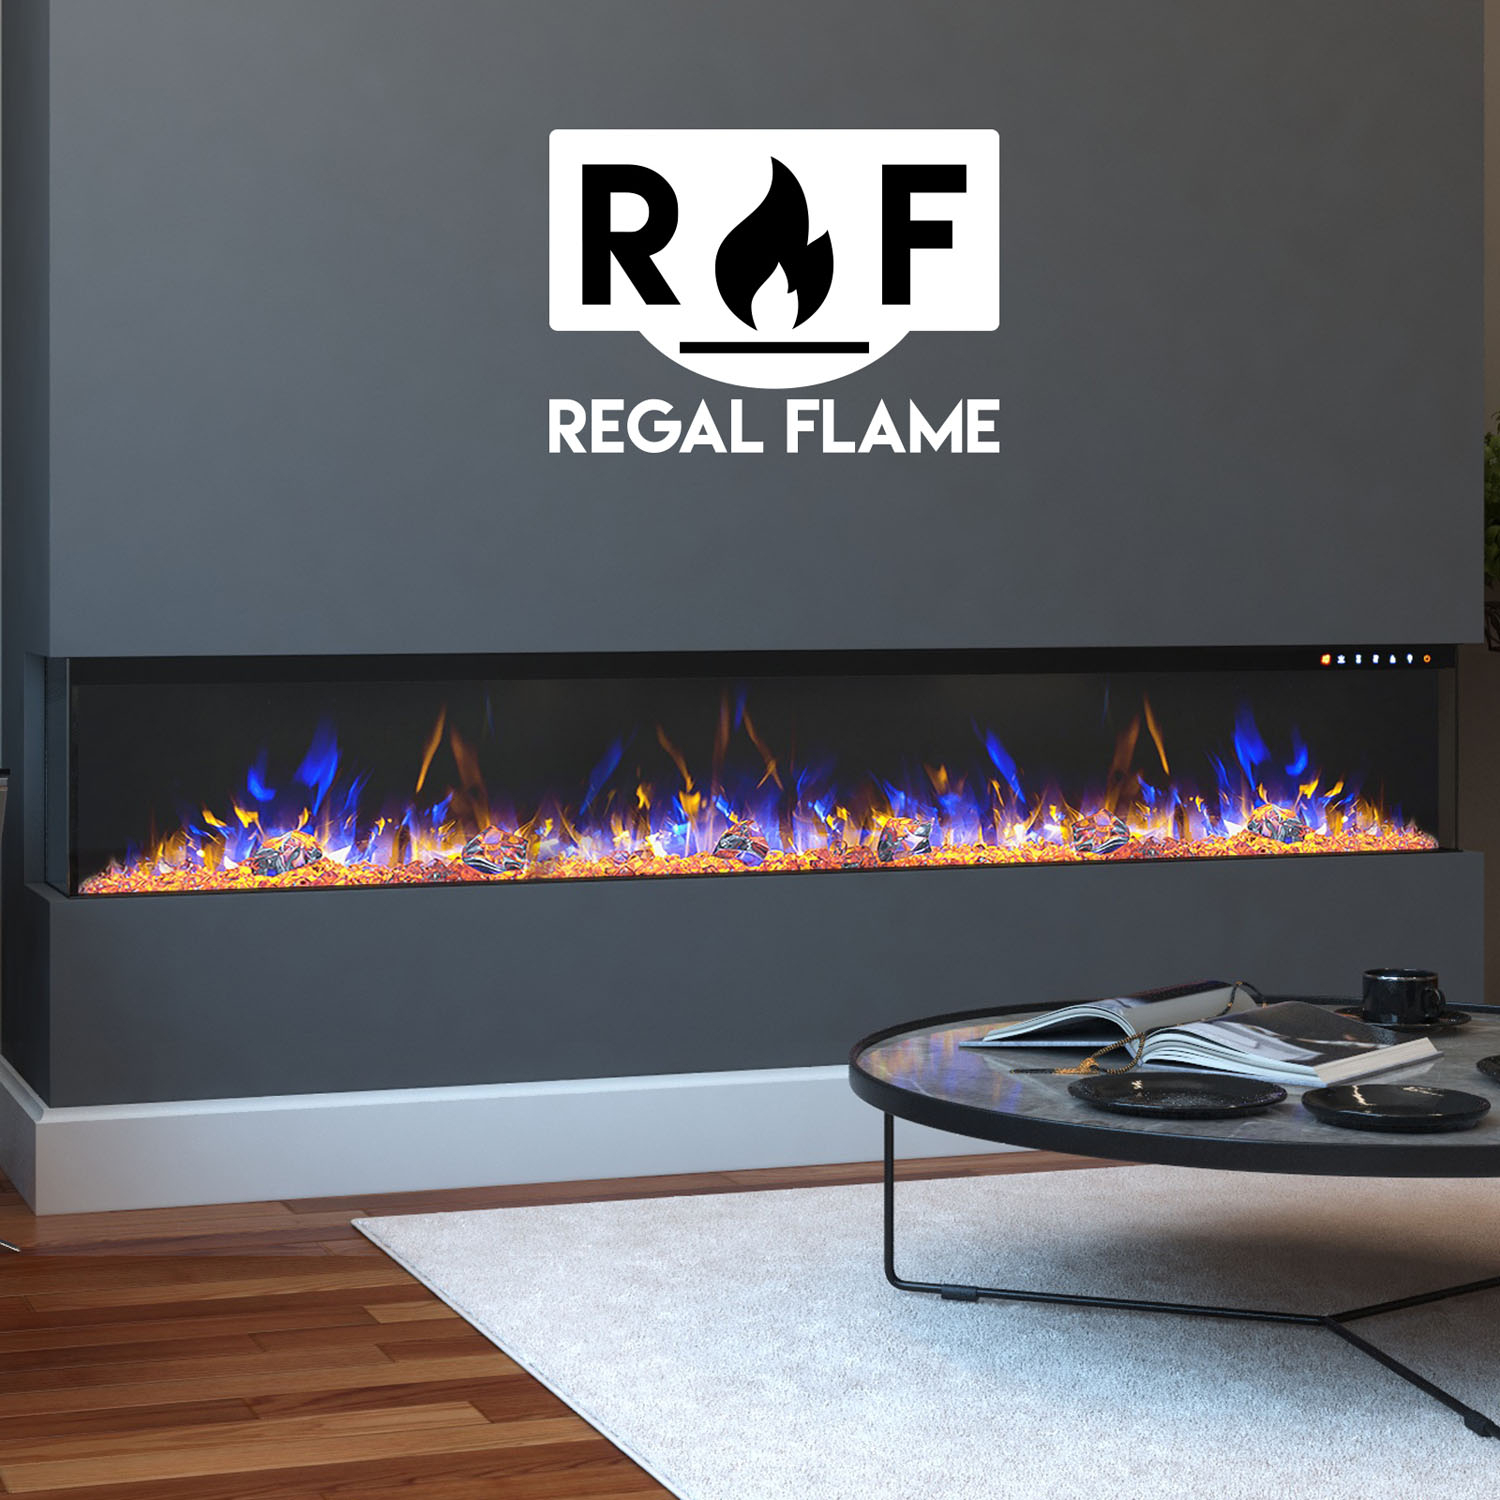 Regal Flame Lw3572 72 In Spectrum Modern Linear Electric 3 Sided Wall Mounted Built In Recessed Fireplace 44 72 X 7 9 X 10 1 In Walmart Com Walmart Com